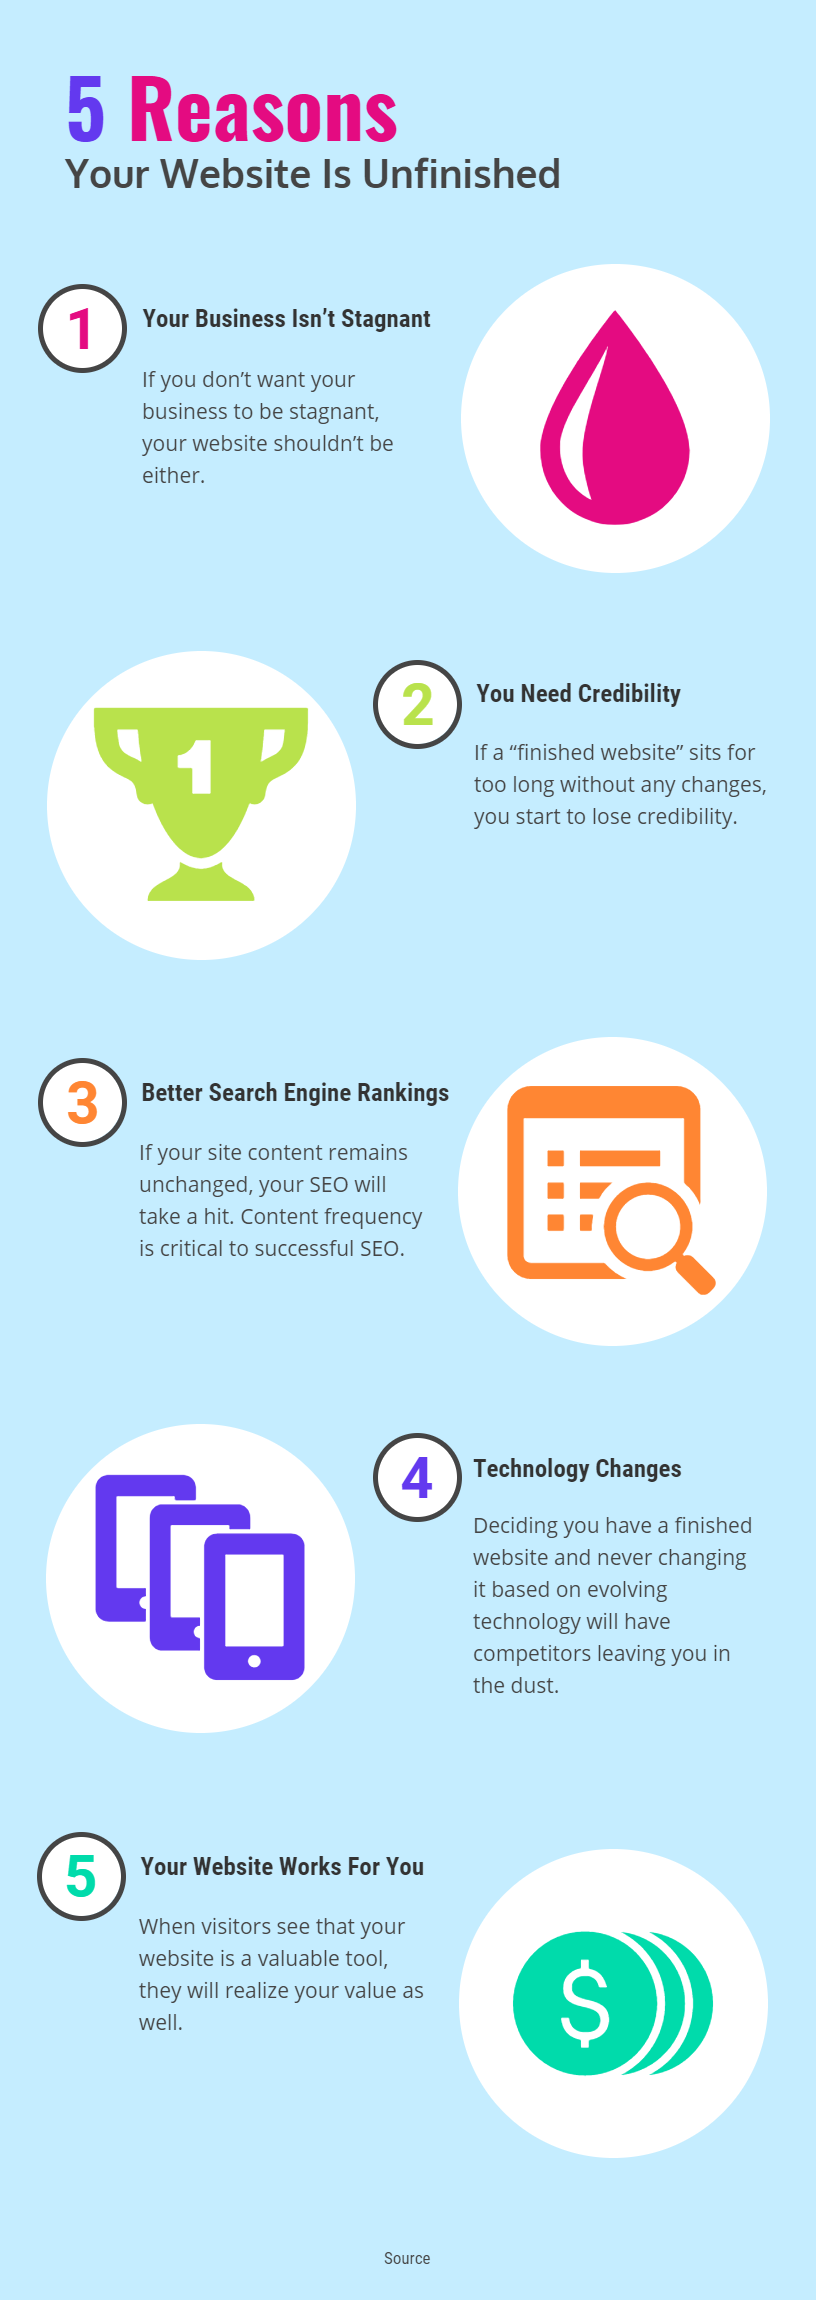 5 reasons your website is unfinished infographic